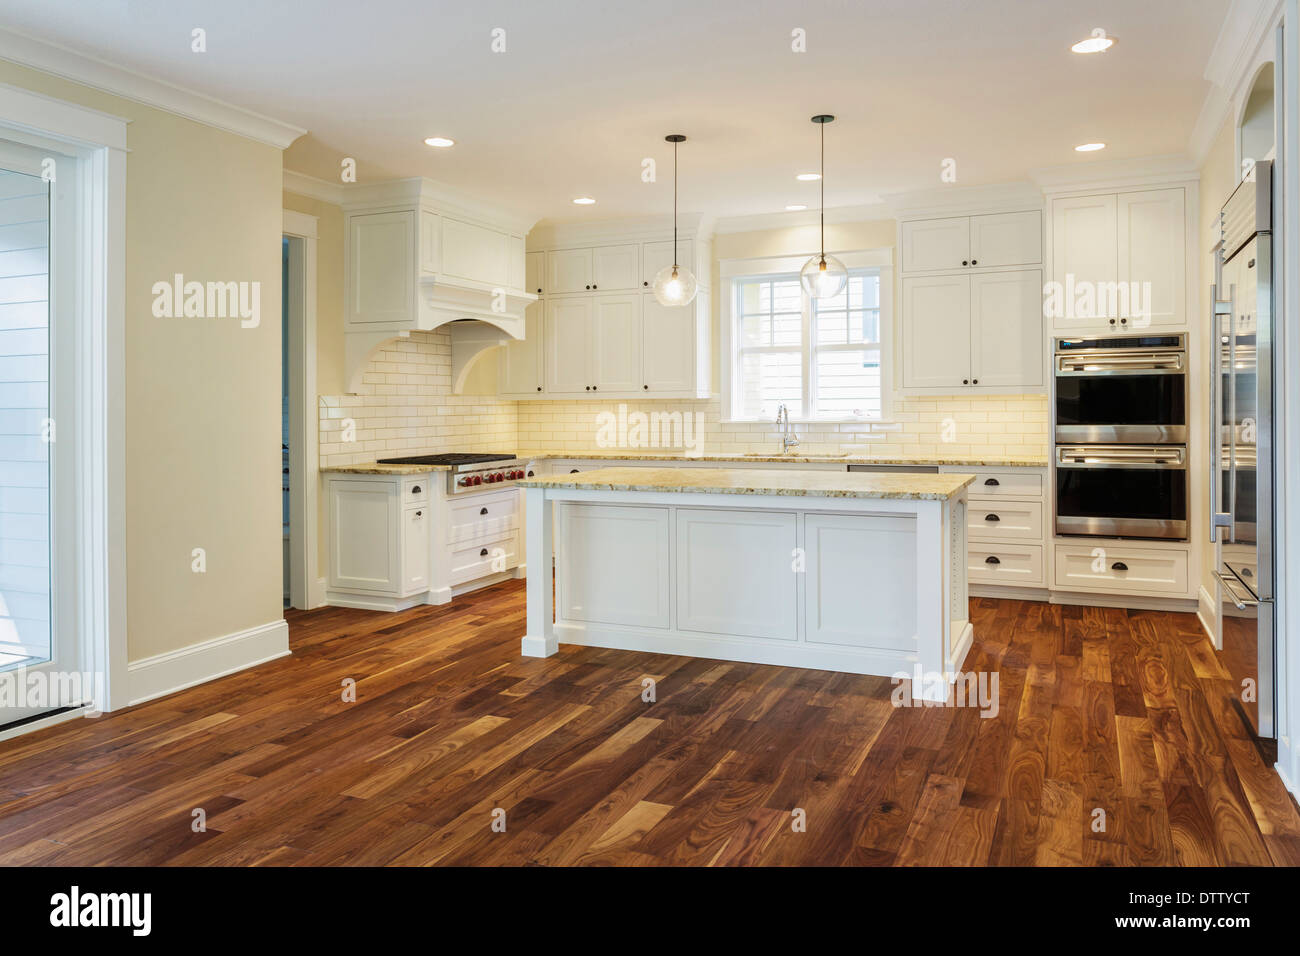 Island and counters in luxury kitchen - Stock Image